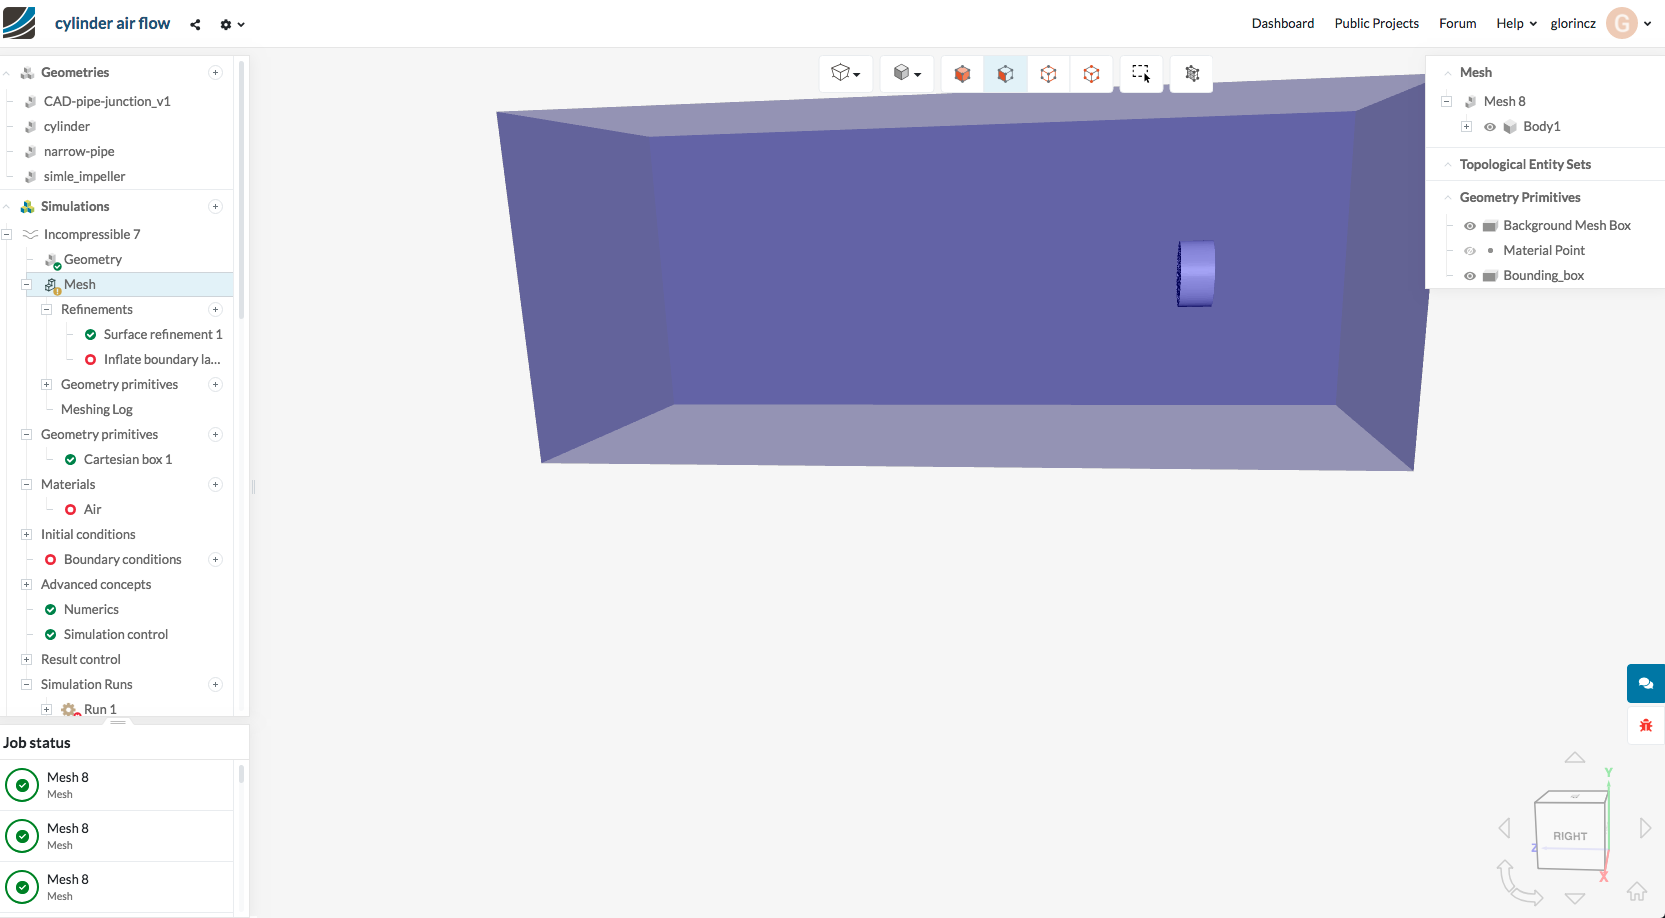 Cannot turn the boundary box into mesh - Project Support